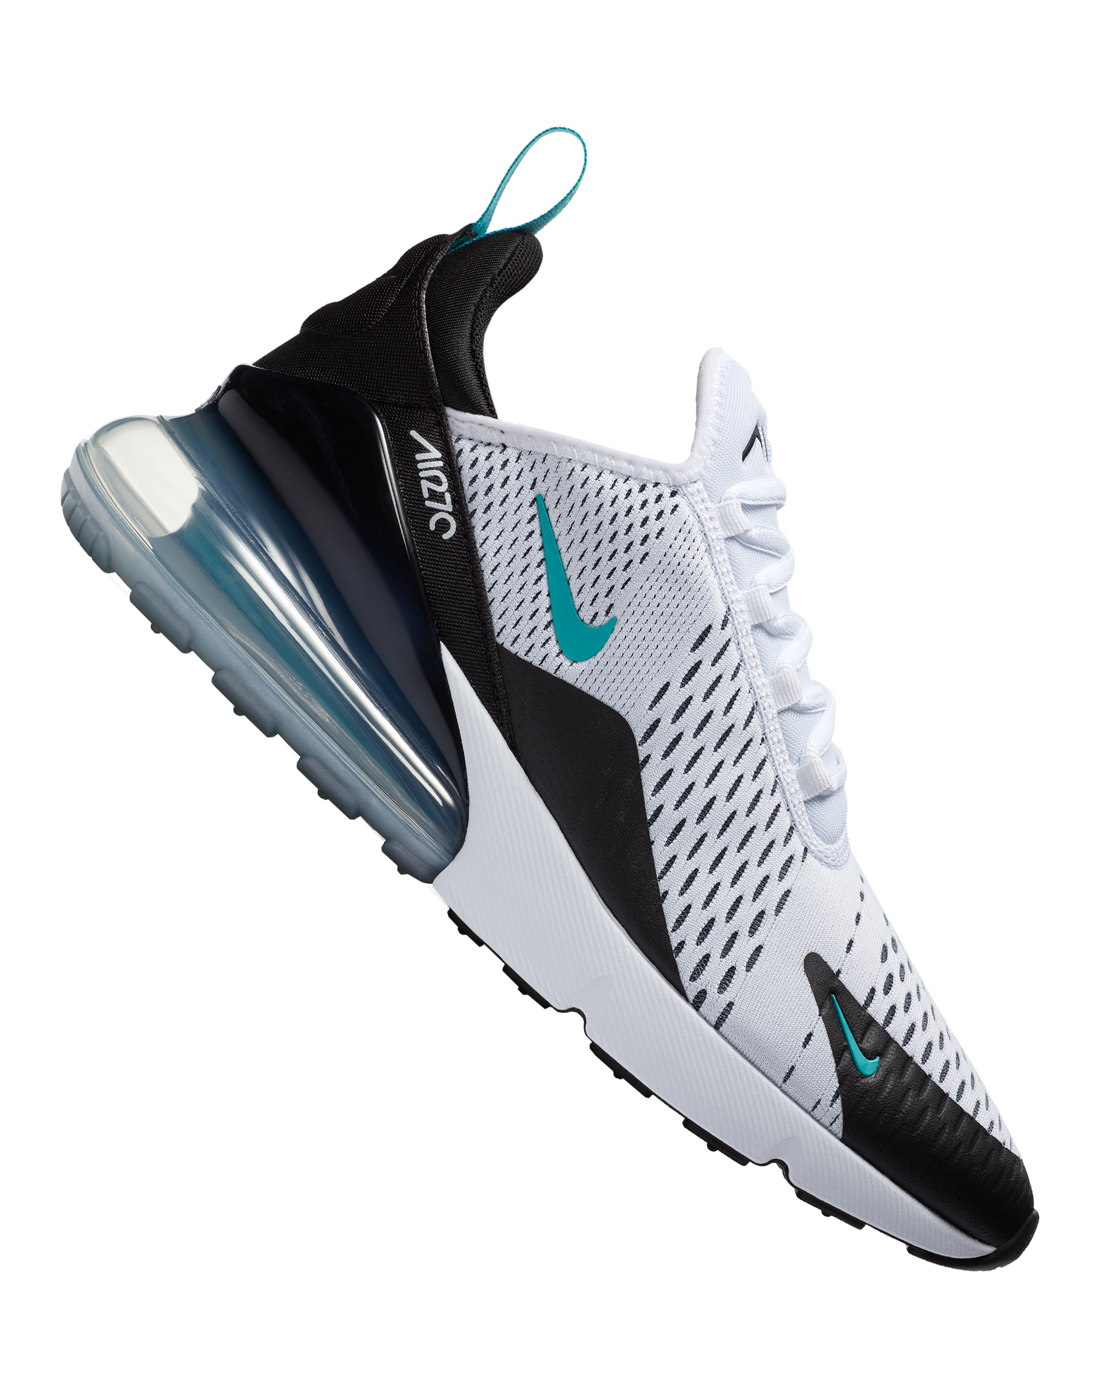 a16a70671 Mens Nike Air Max 270 Dusty Cactus Trainers | Life Style Sports